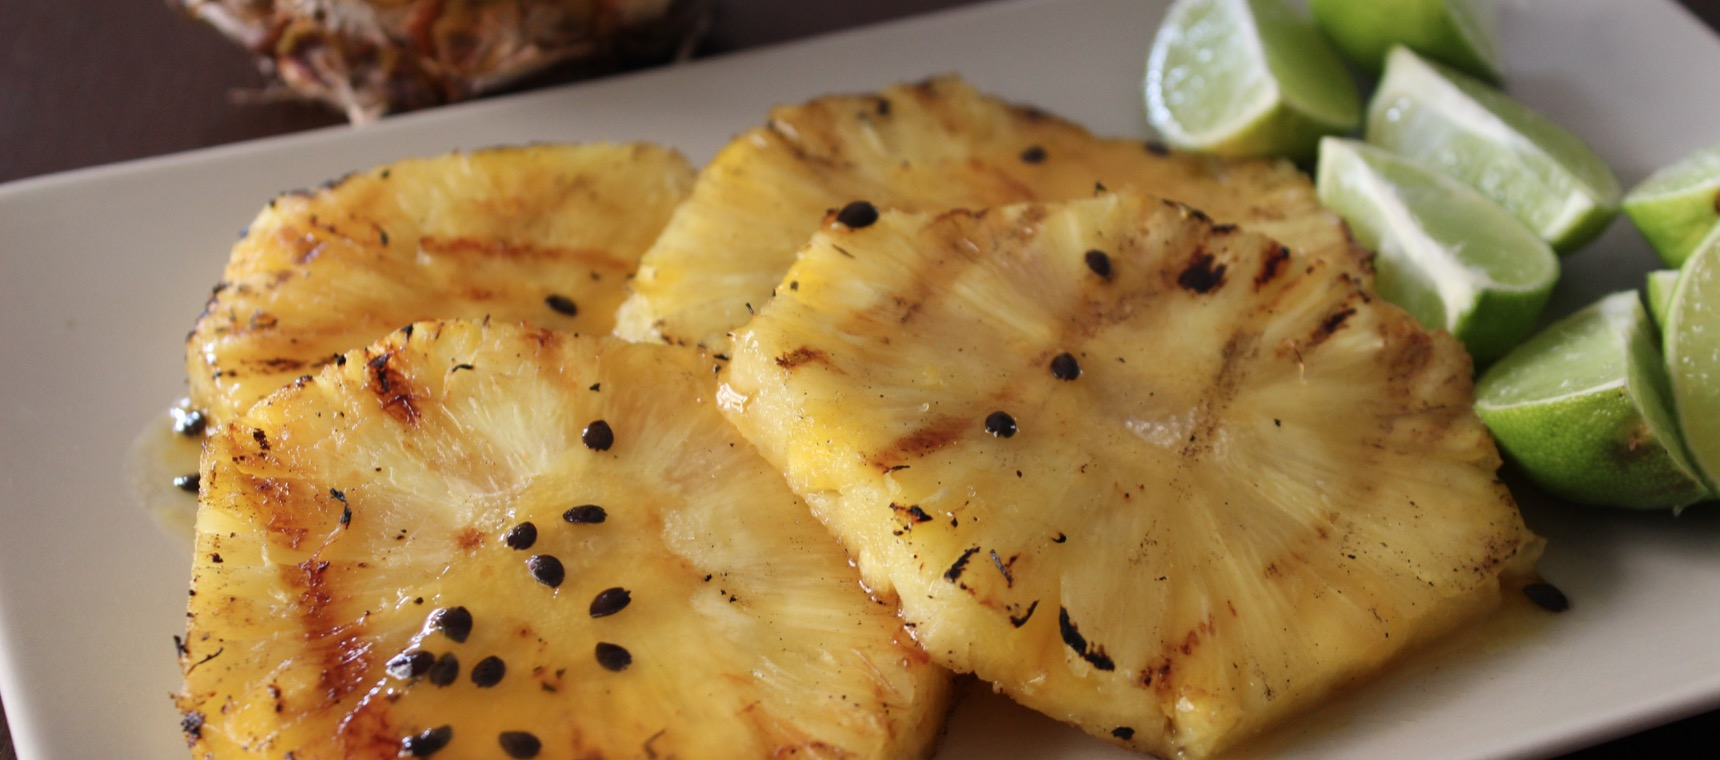 Grilled Pineapple with Tropical Sauce